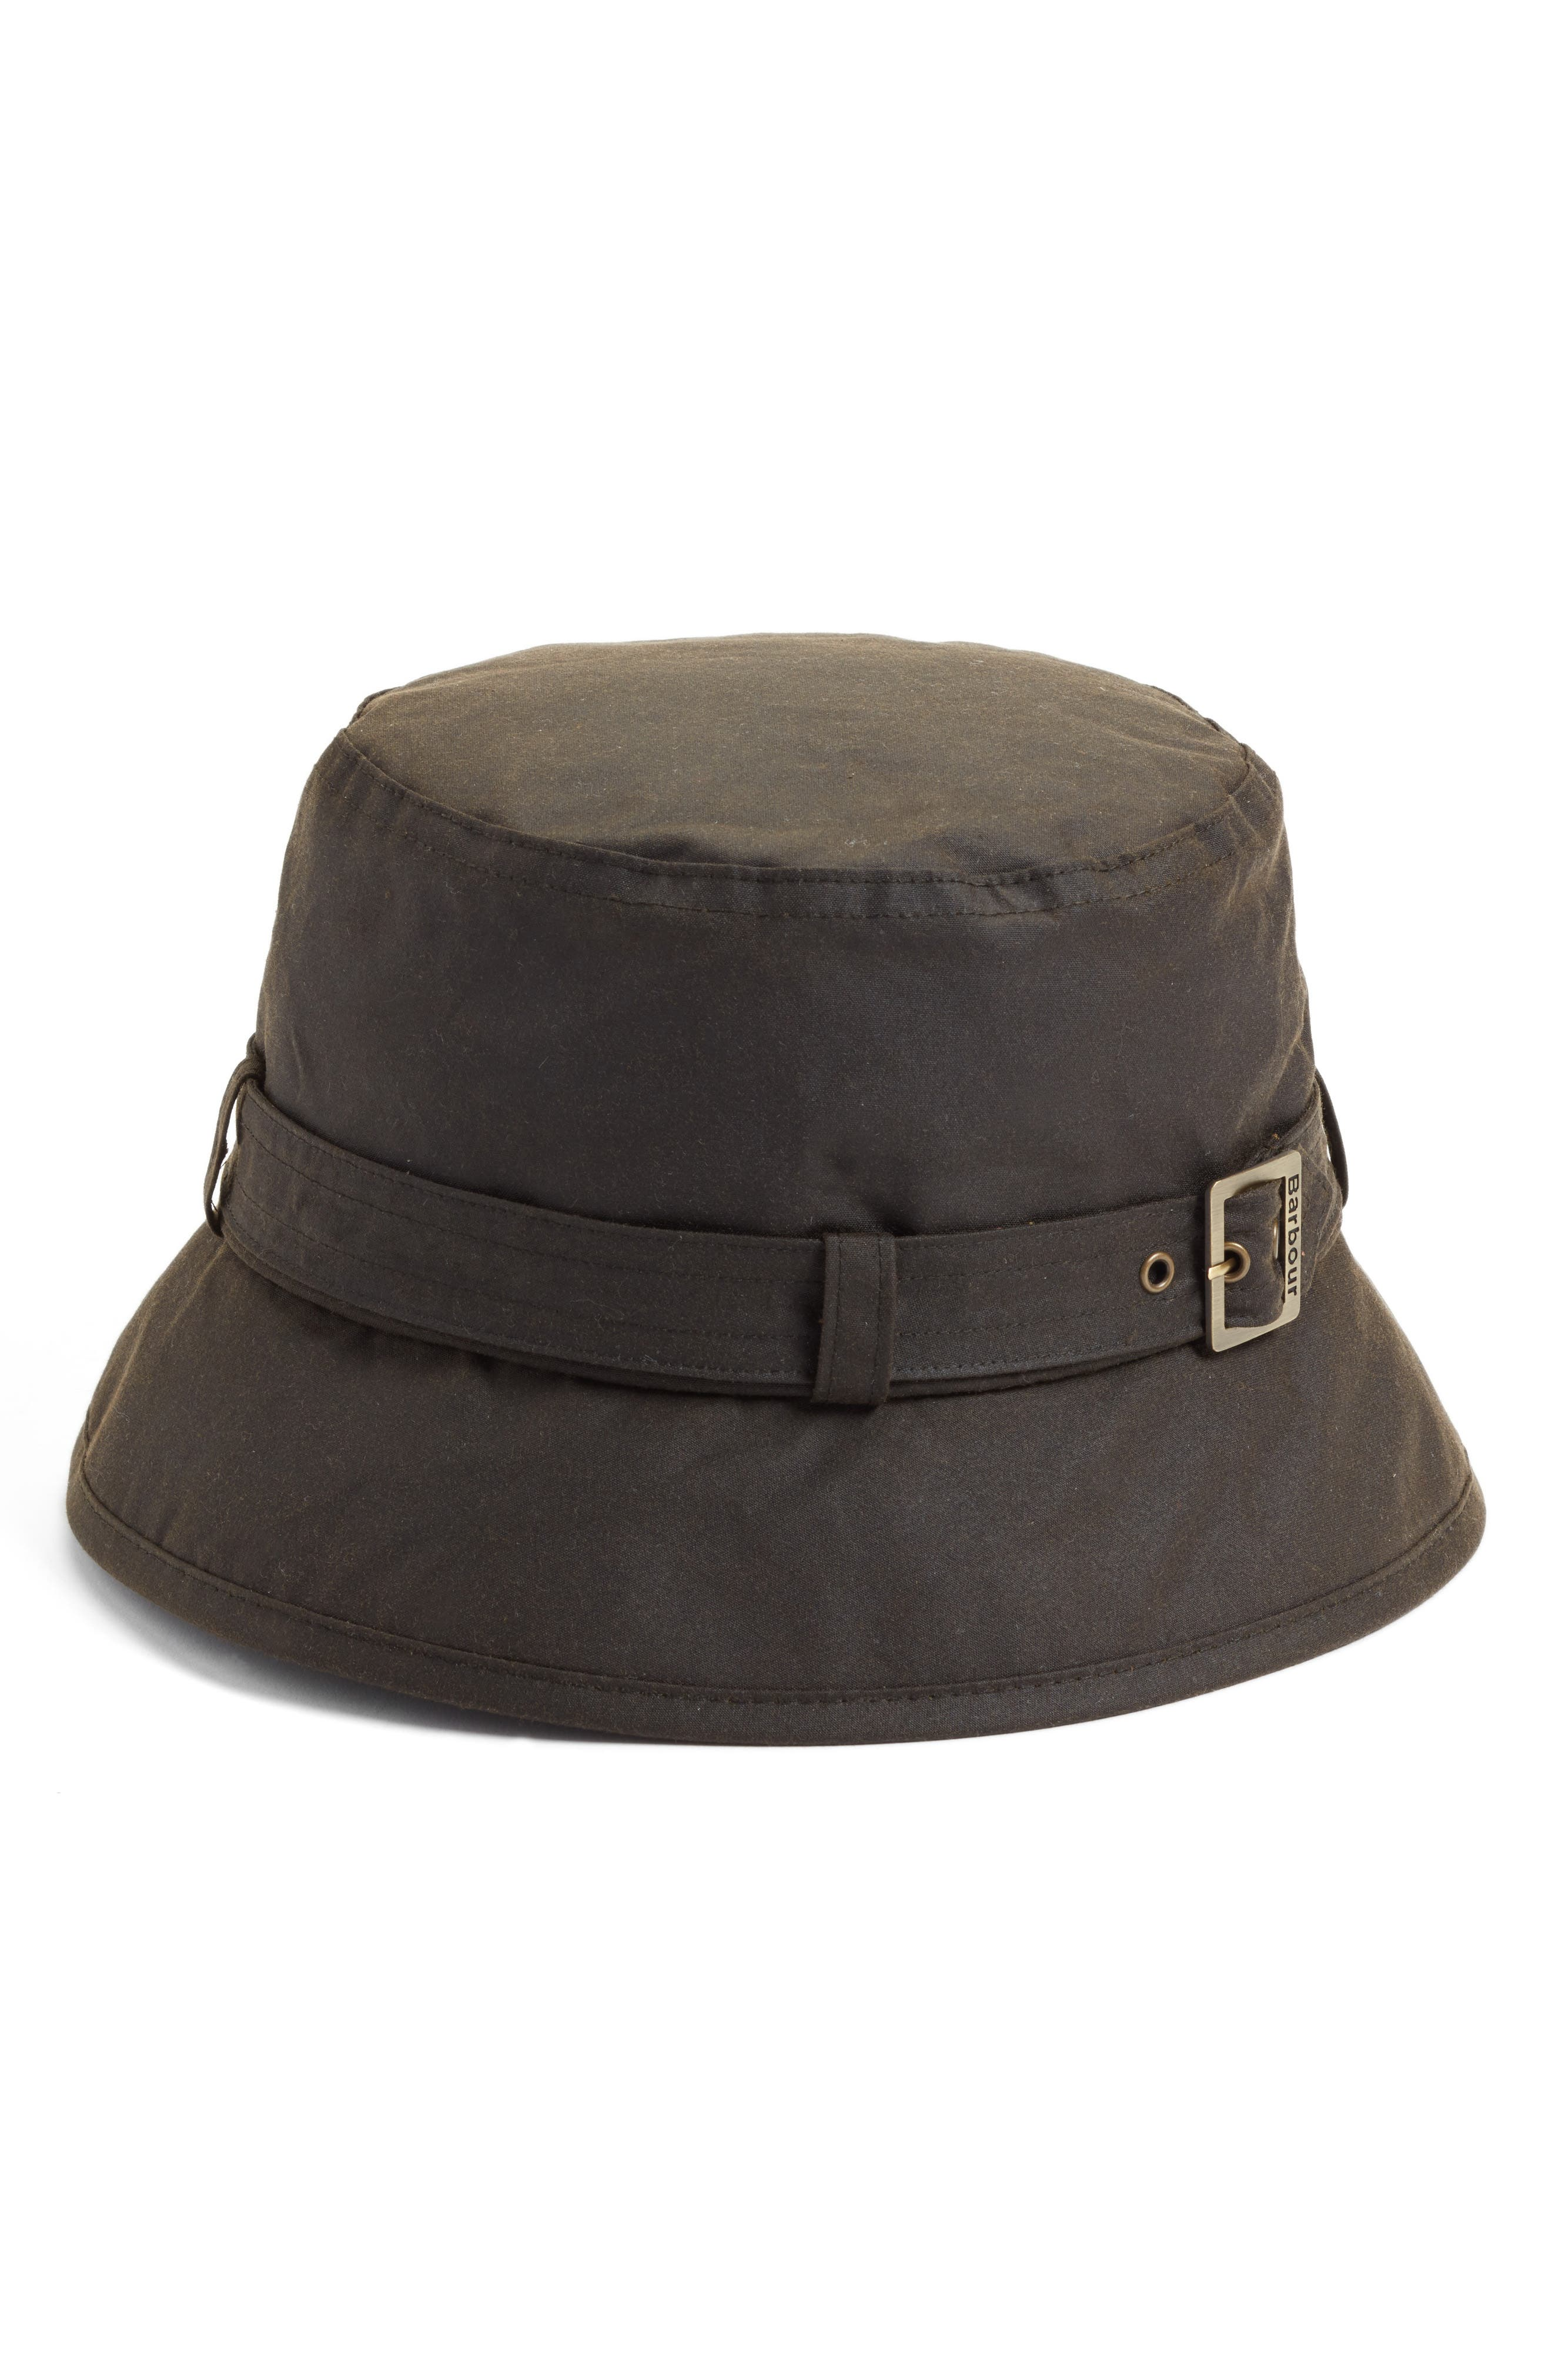 Kelso Bucket Hat,                             Main thumbnail 1, color,                             Olive